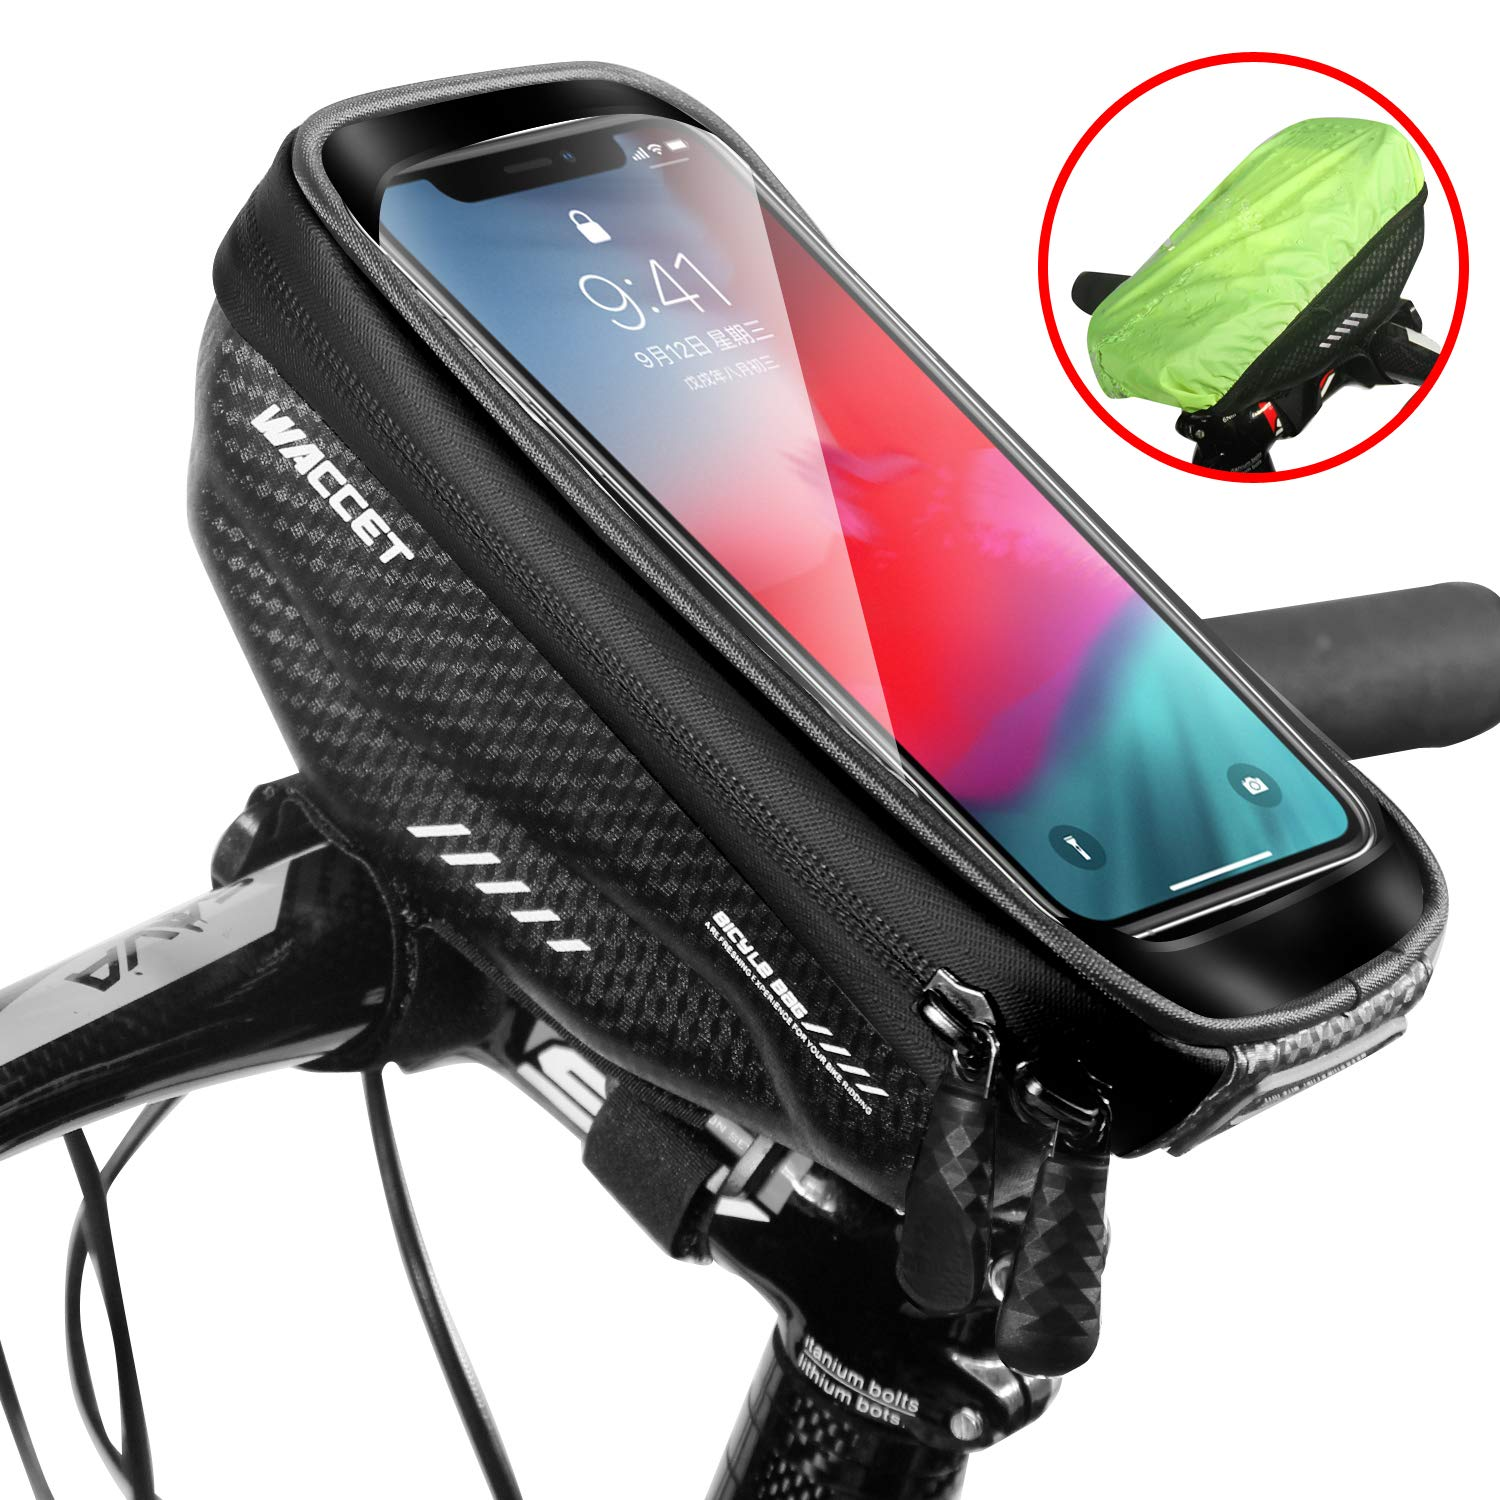 Phone Holder Mount For Bicycle Top Tube//Handlebars